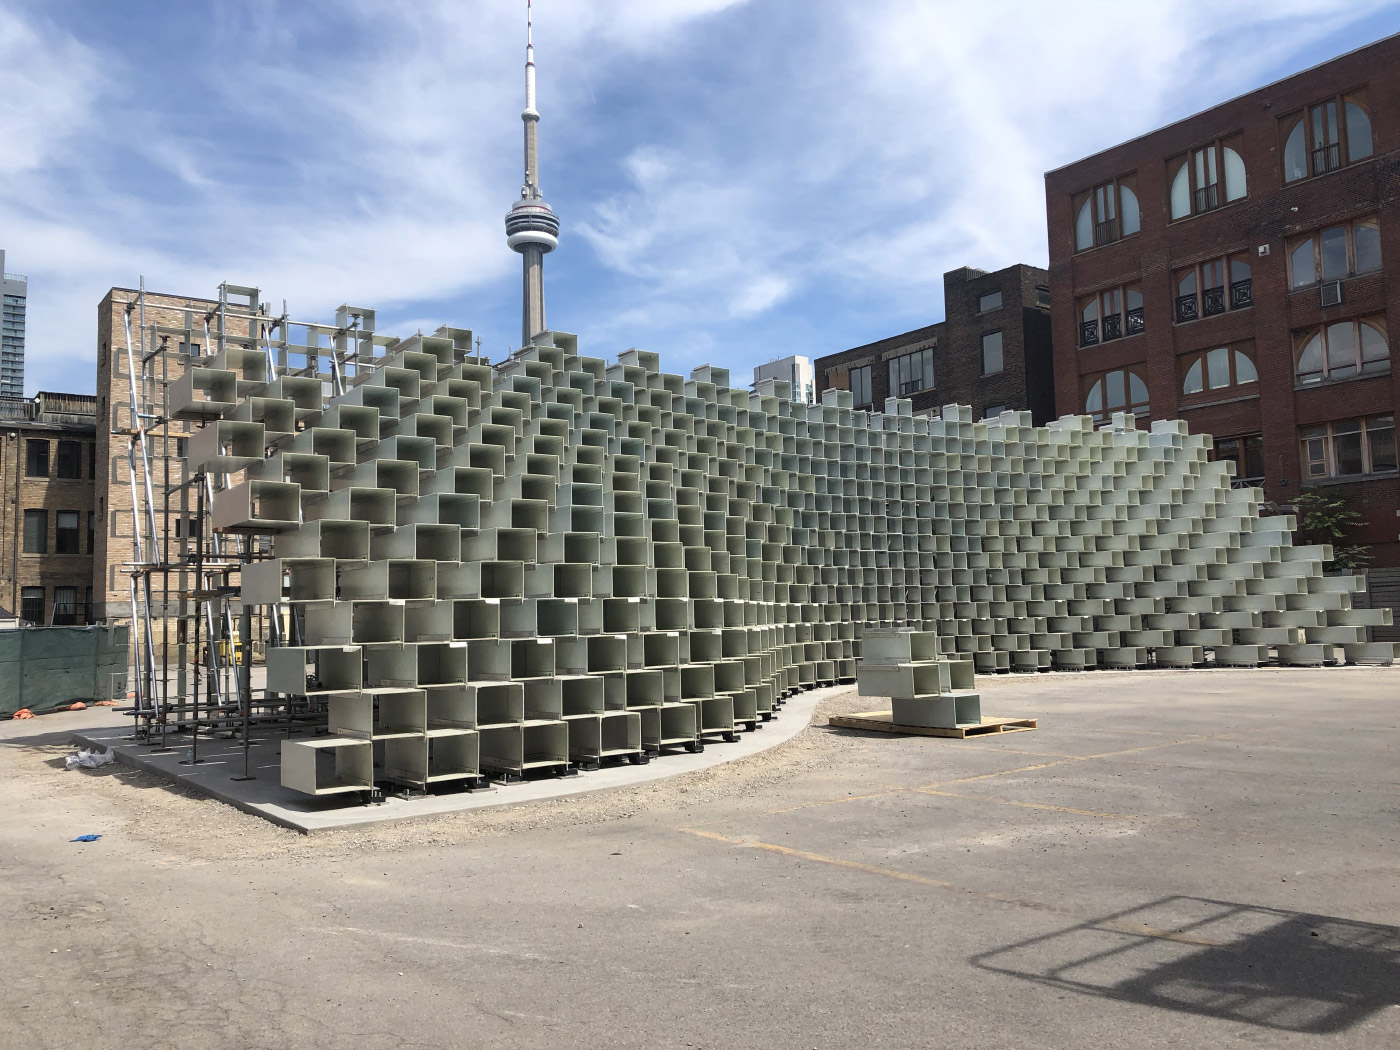 BIG's 2016 Serpentine pavilion being reconstructed in front of CN Tower. (Courtesy Westbank)